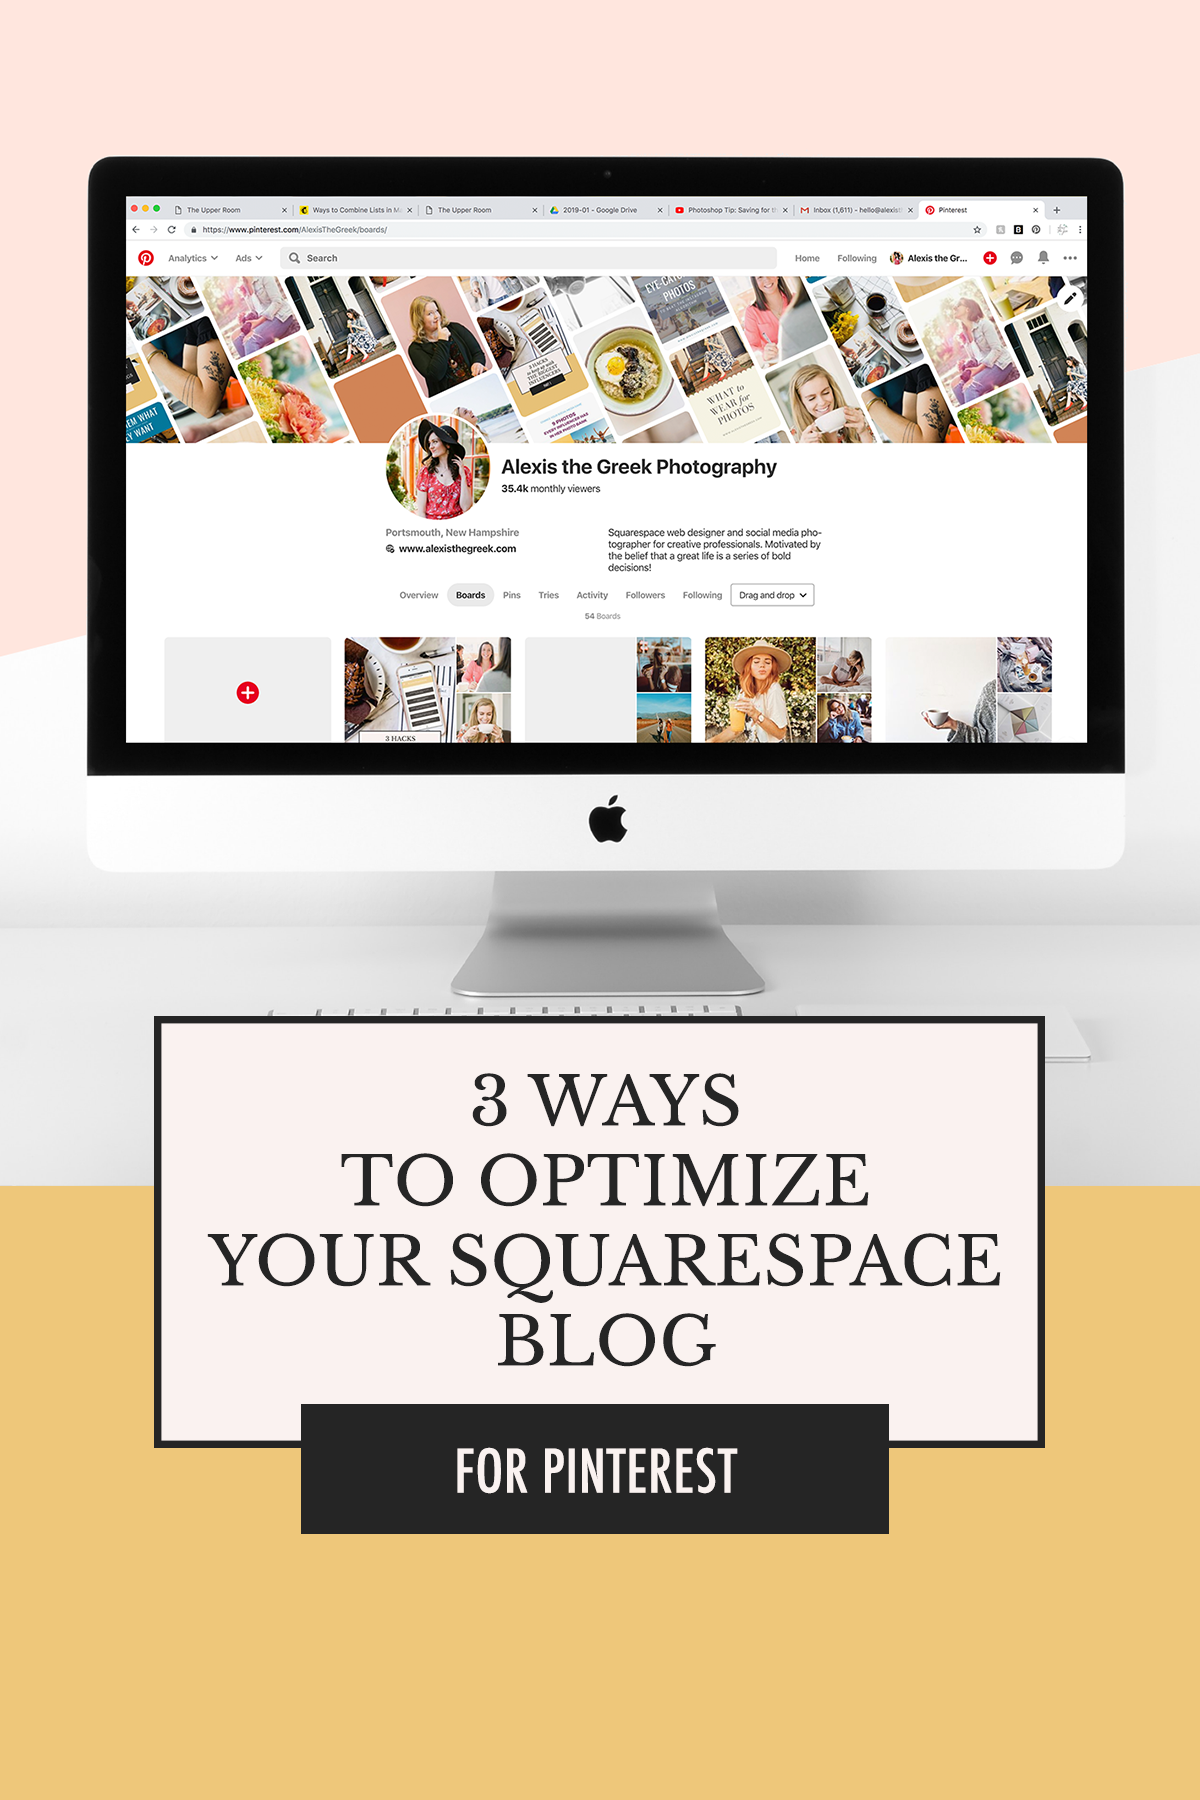 Pinterest Strategy Basics: 3 Ways to Optimize Your Squarespace Blog Images without Tailwind | Alexis the Greek blog